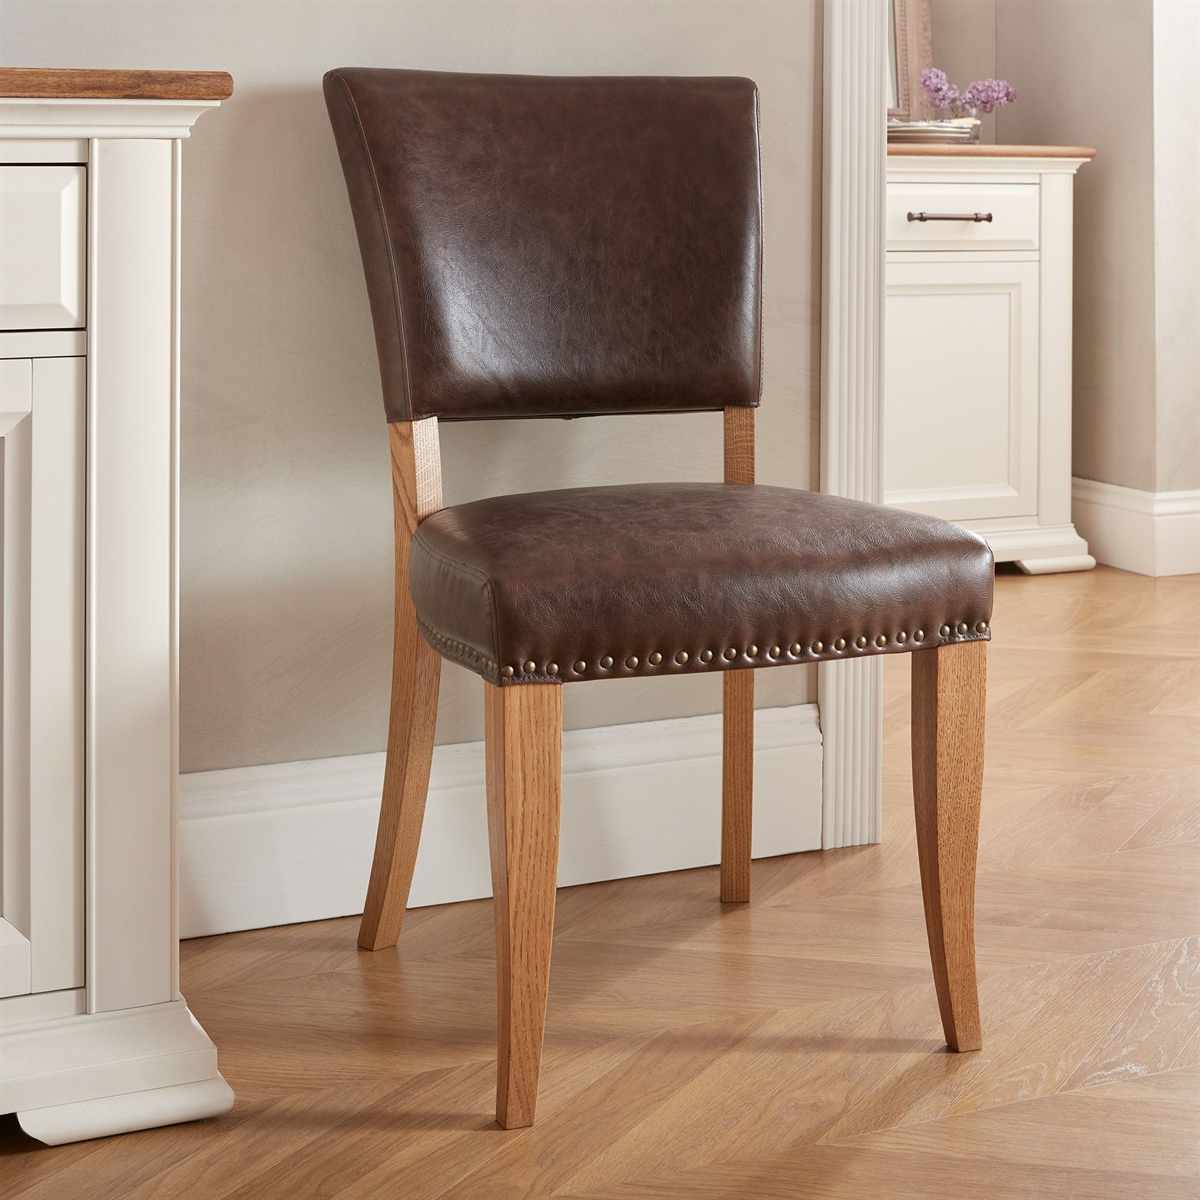 Belgrave Rustic Oak - Upholstered Chair - Rustic Espresso Faux Leather